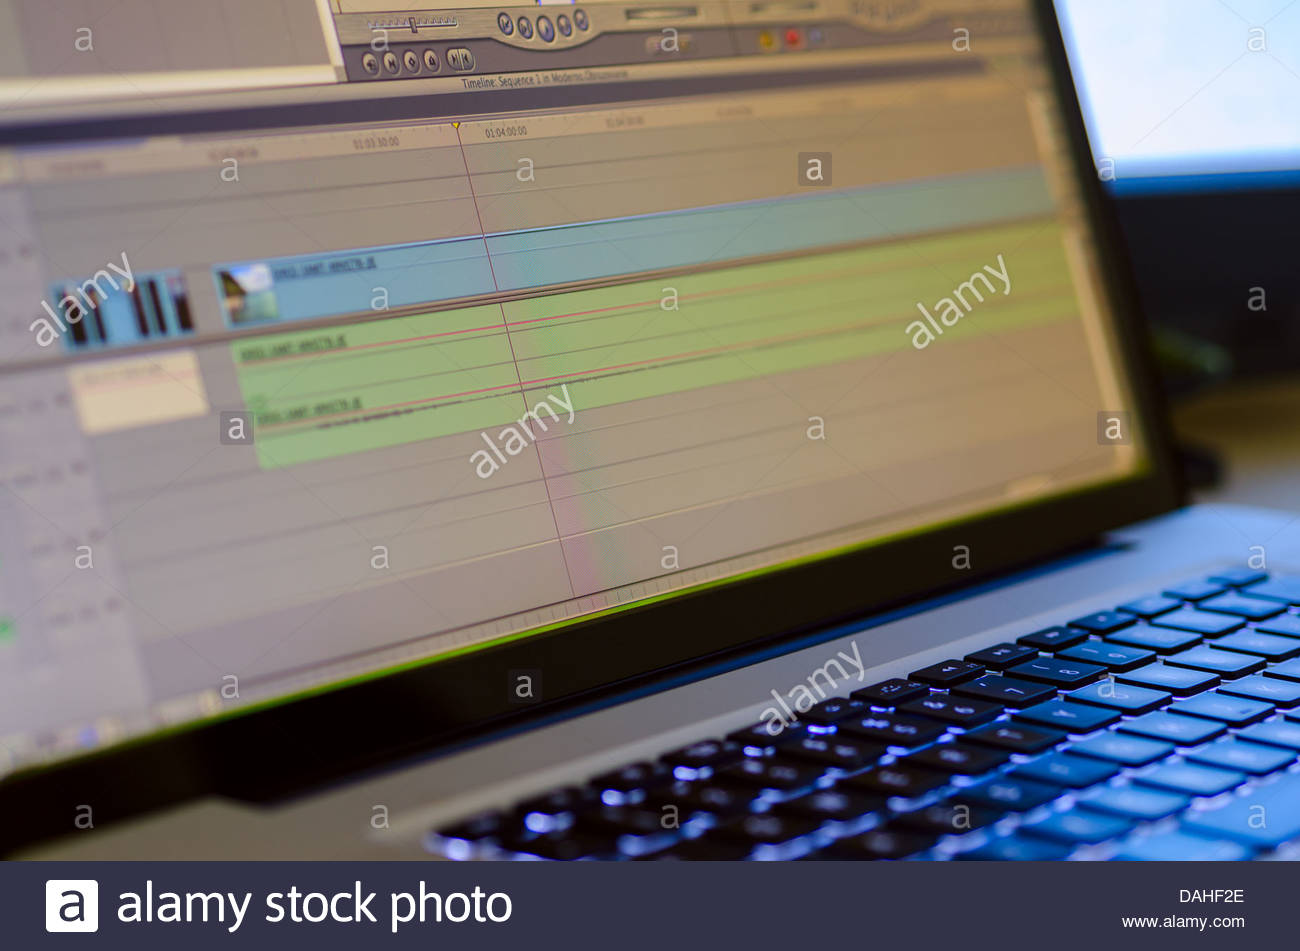 Professional video editing equipment - Stock Image